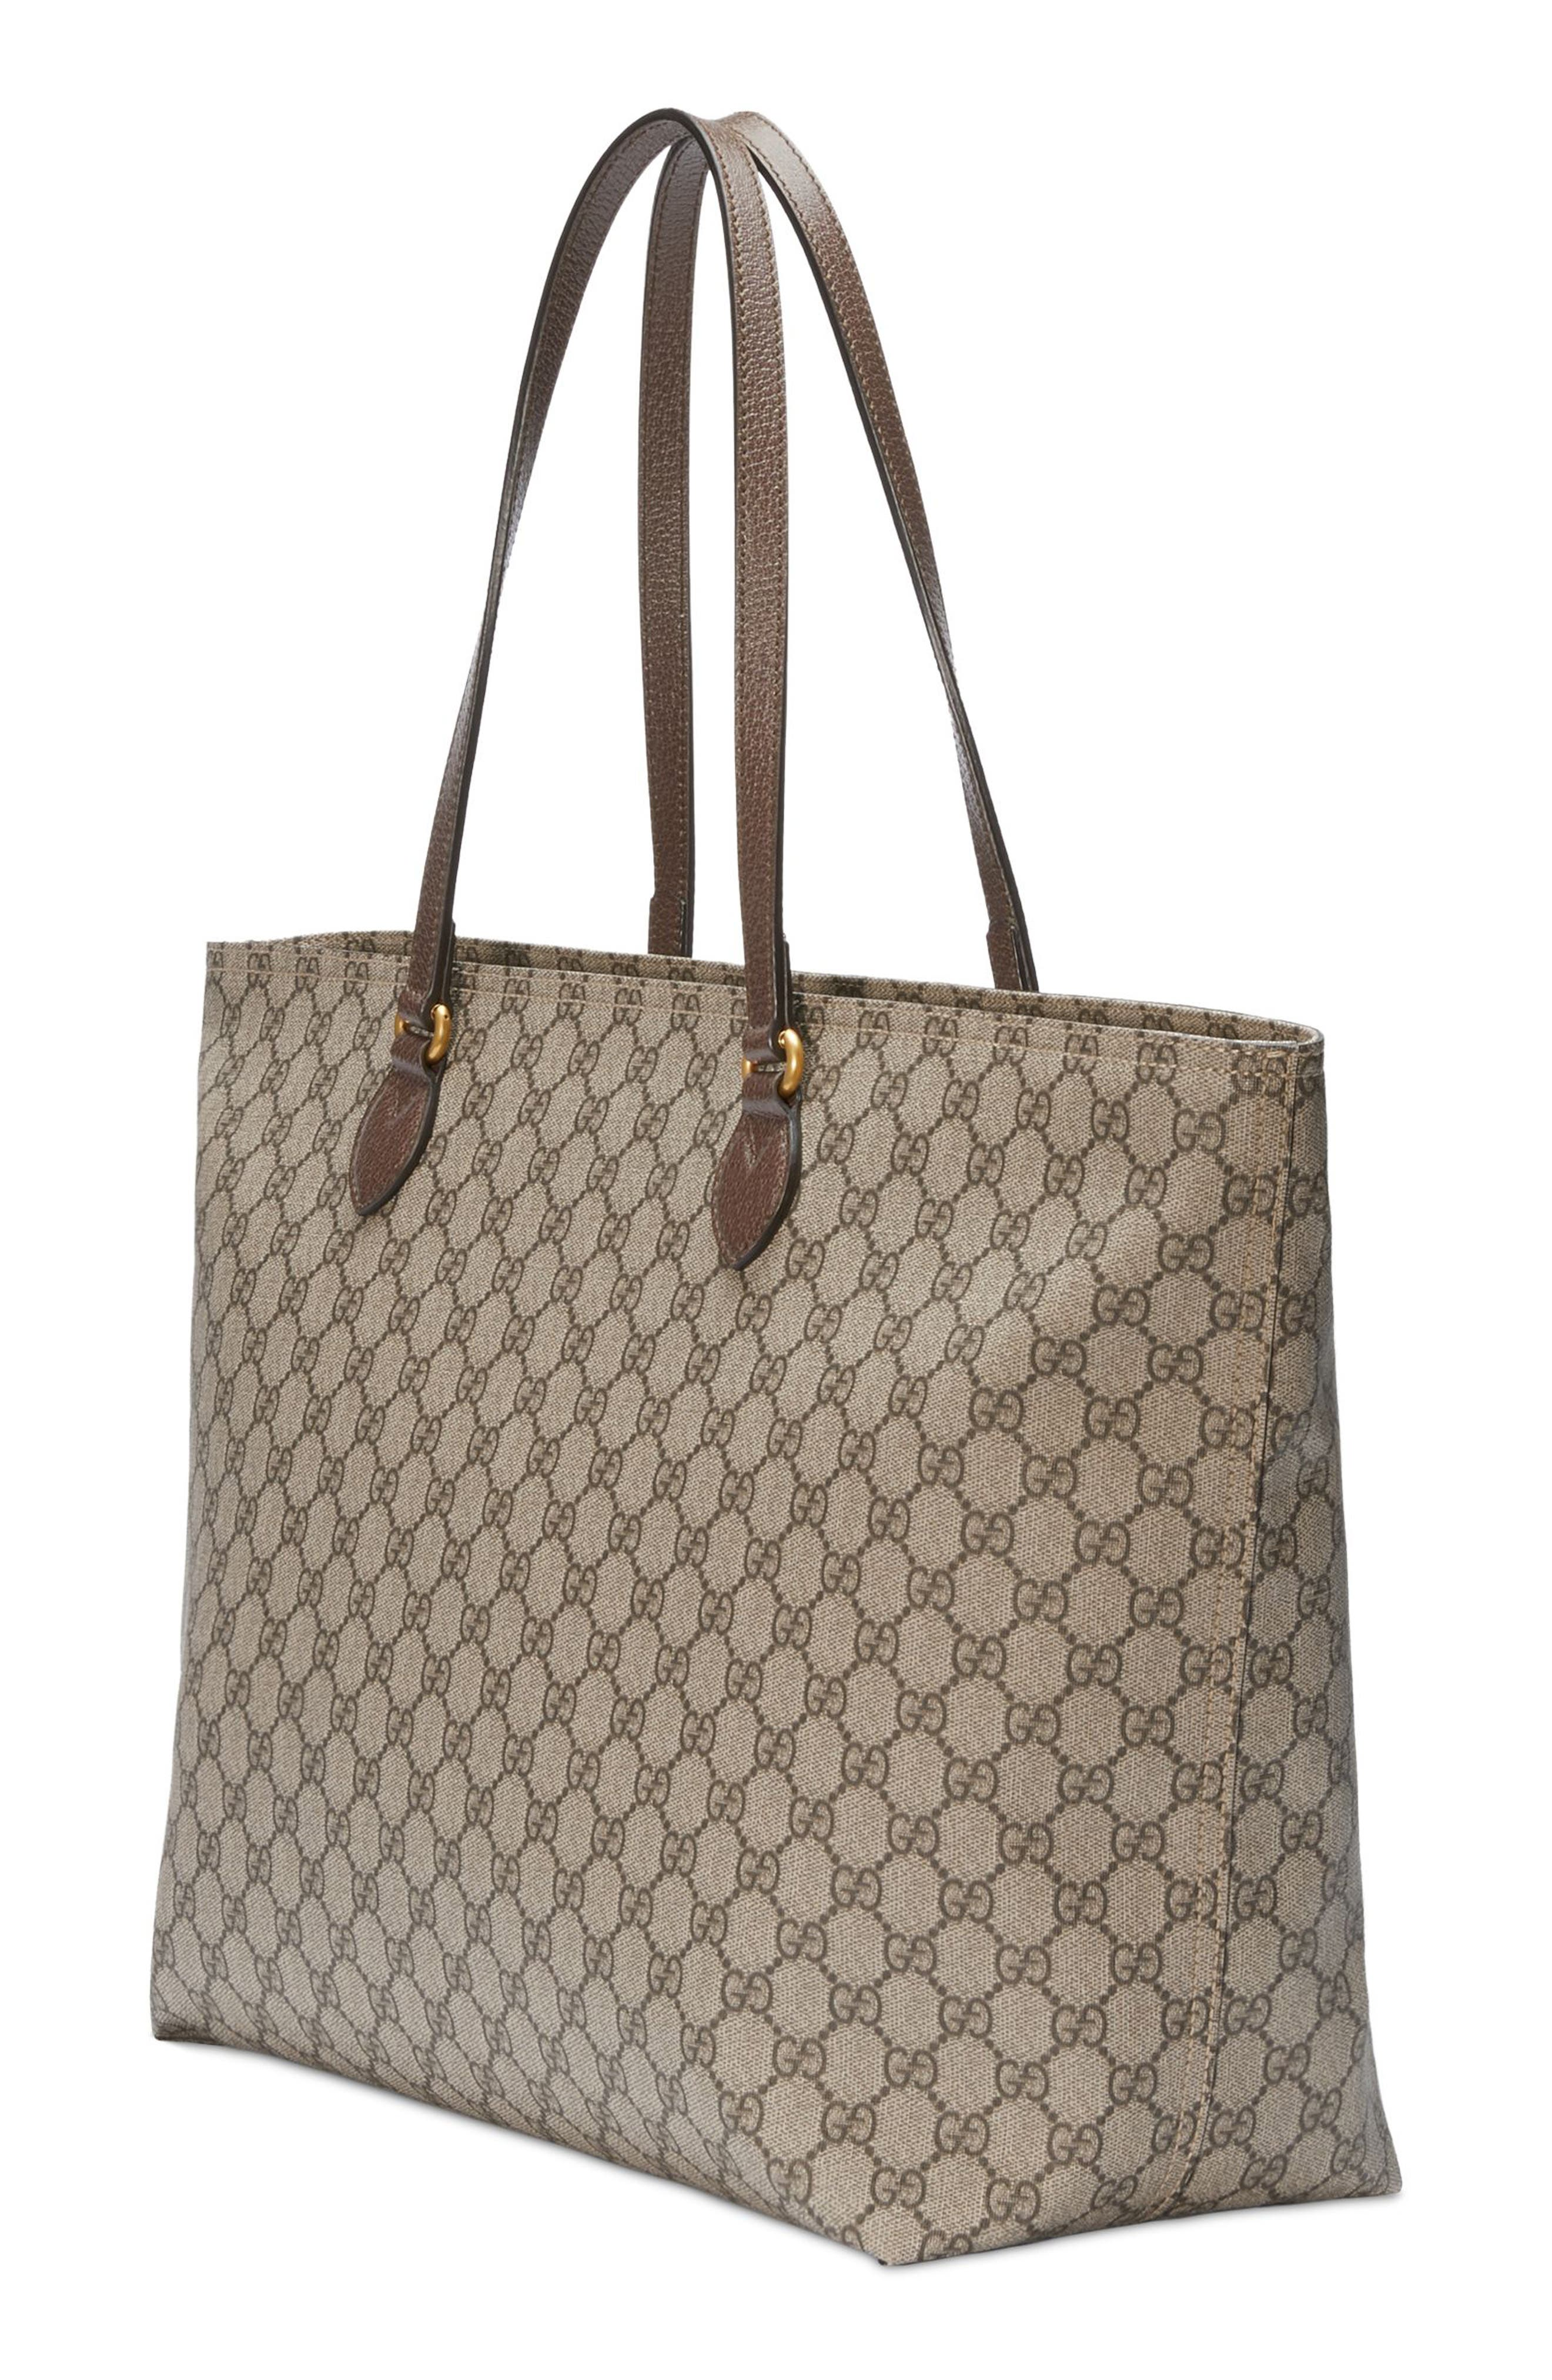 Medium Ophidia Soft GG Supreme Canvas Tote,                             Alternate thumbnail 4, color,                             BEIGE EBONY/ NEW ACERO